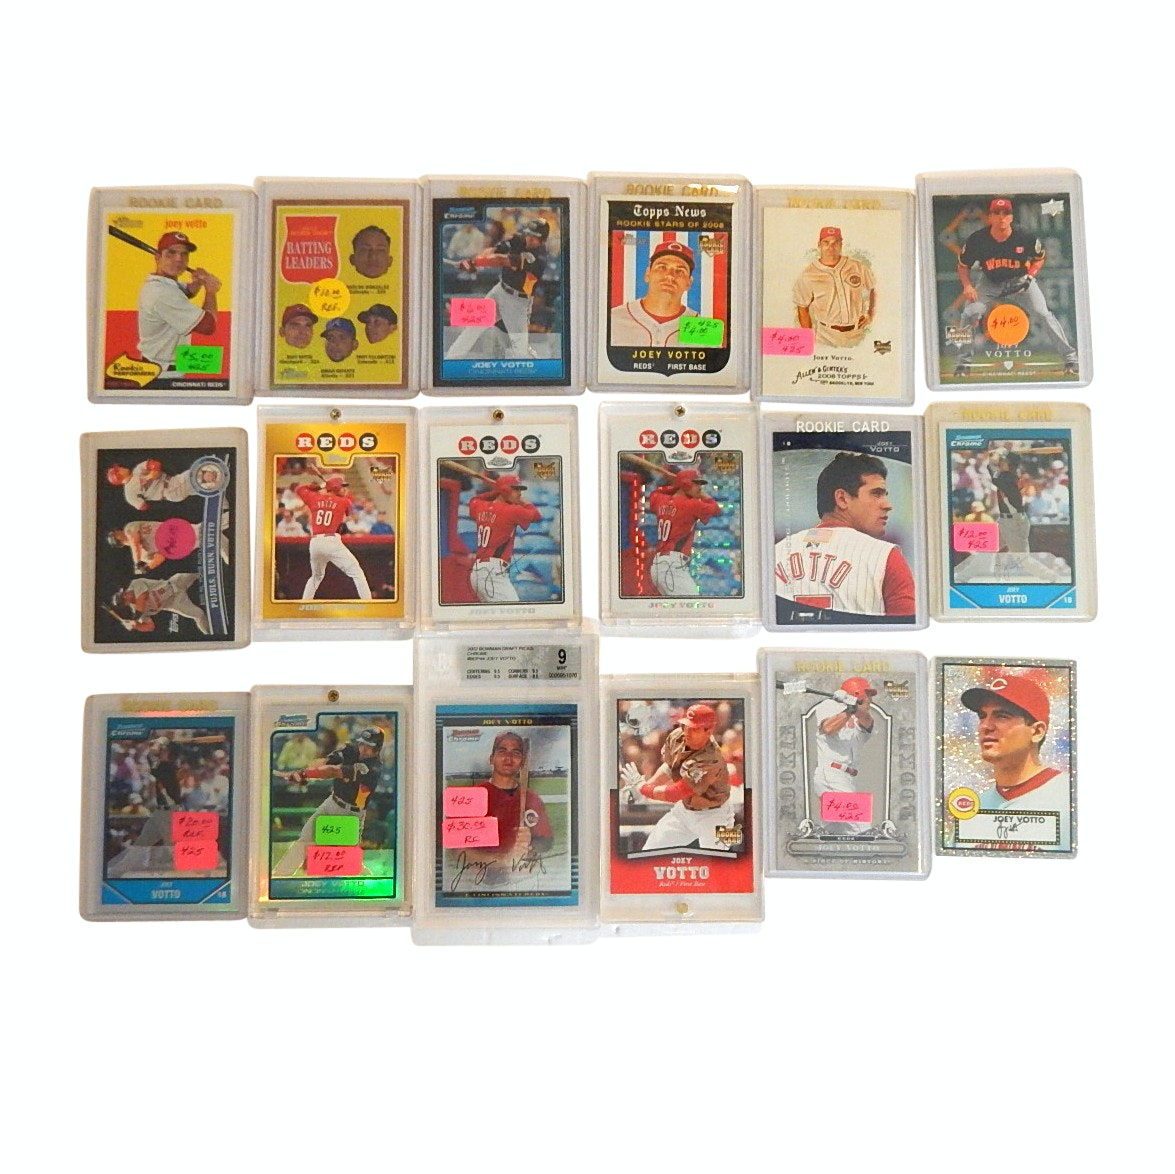 Joey Votto Baseball Card Lot with Refractors, Gold Rookie, Graded Rookie Card